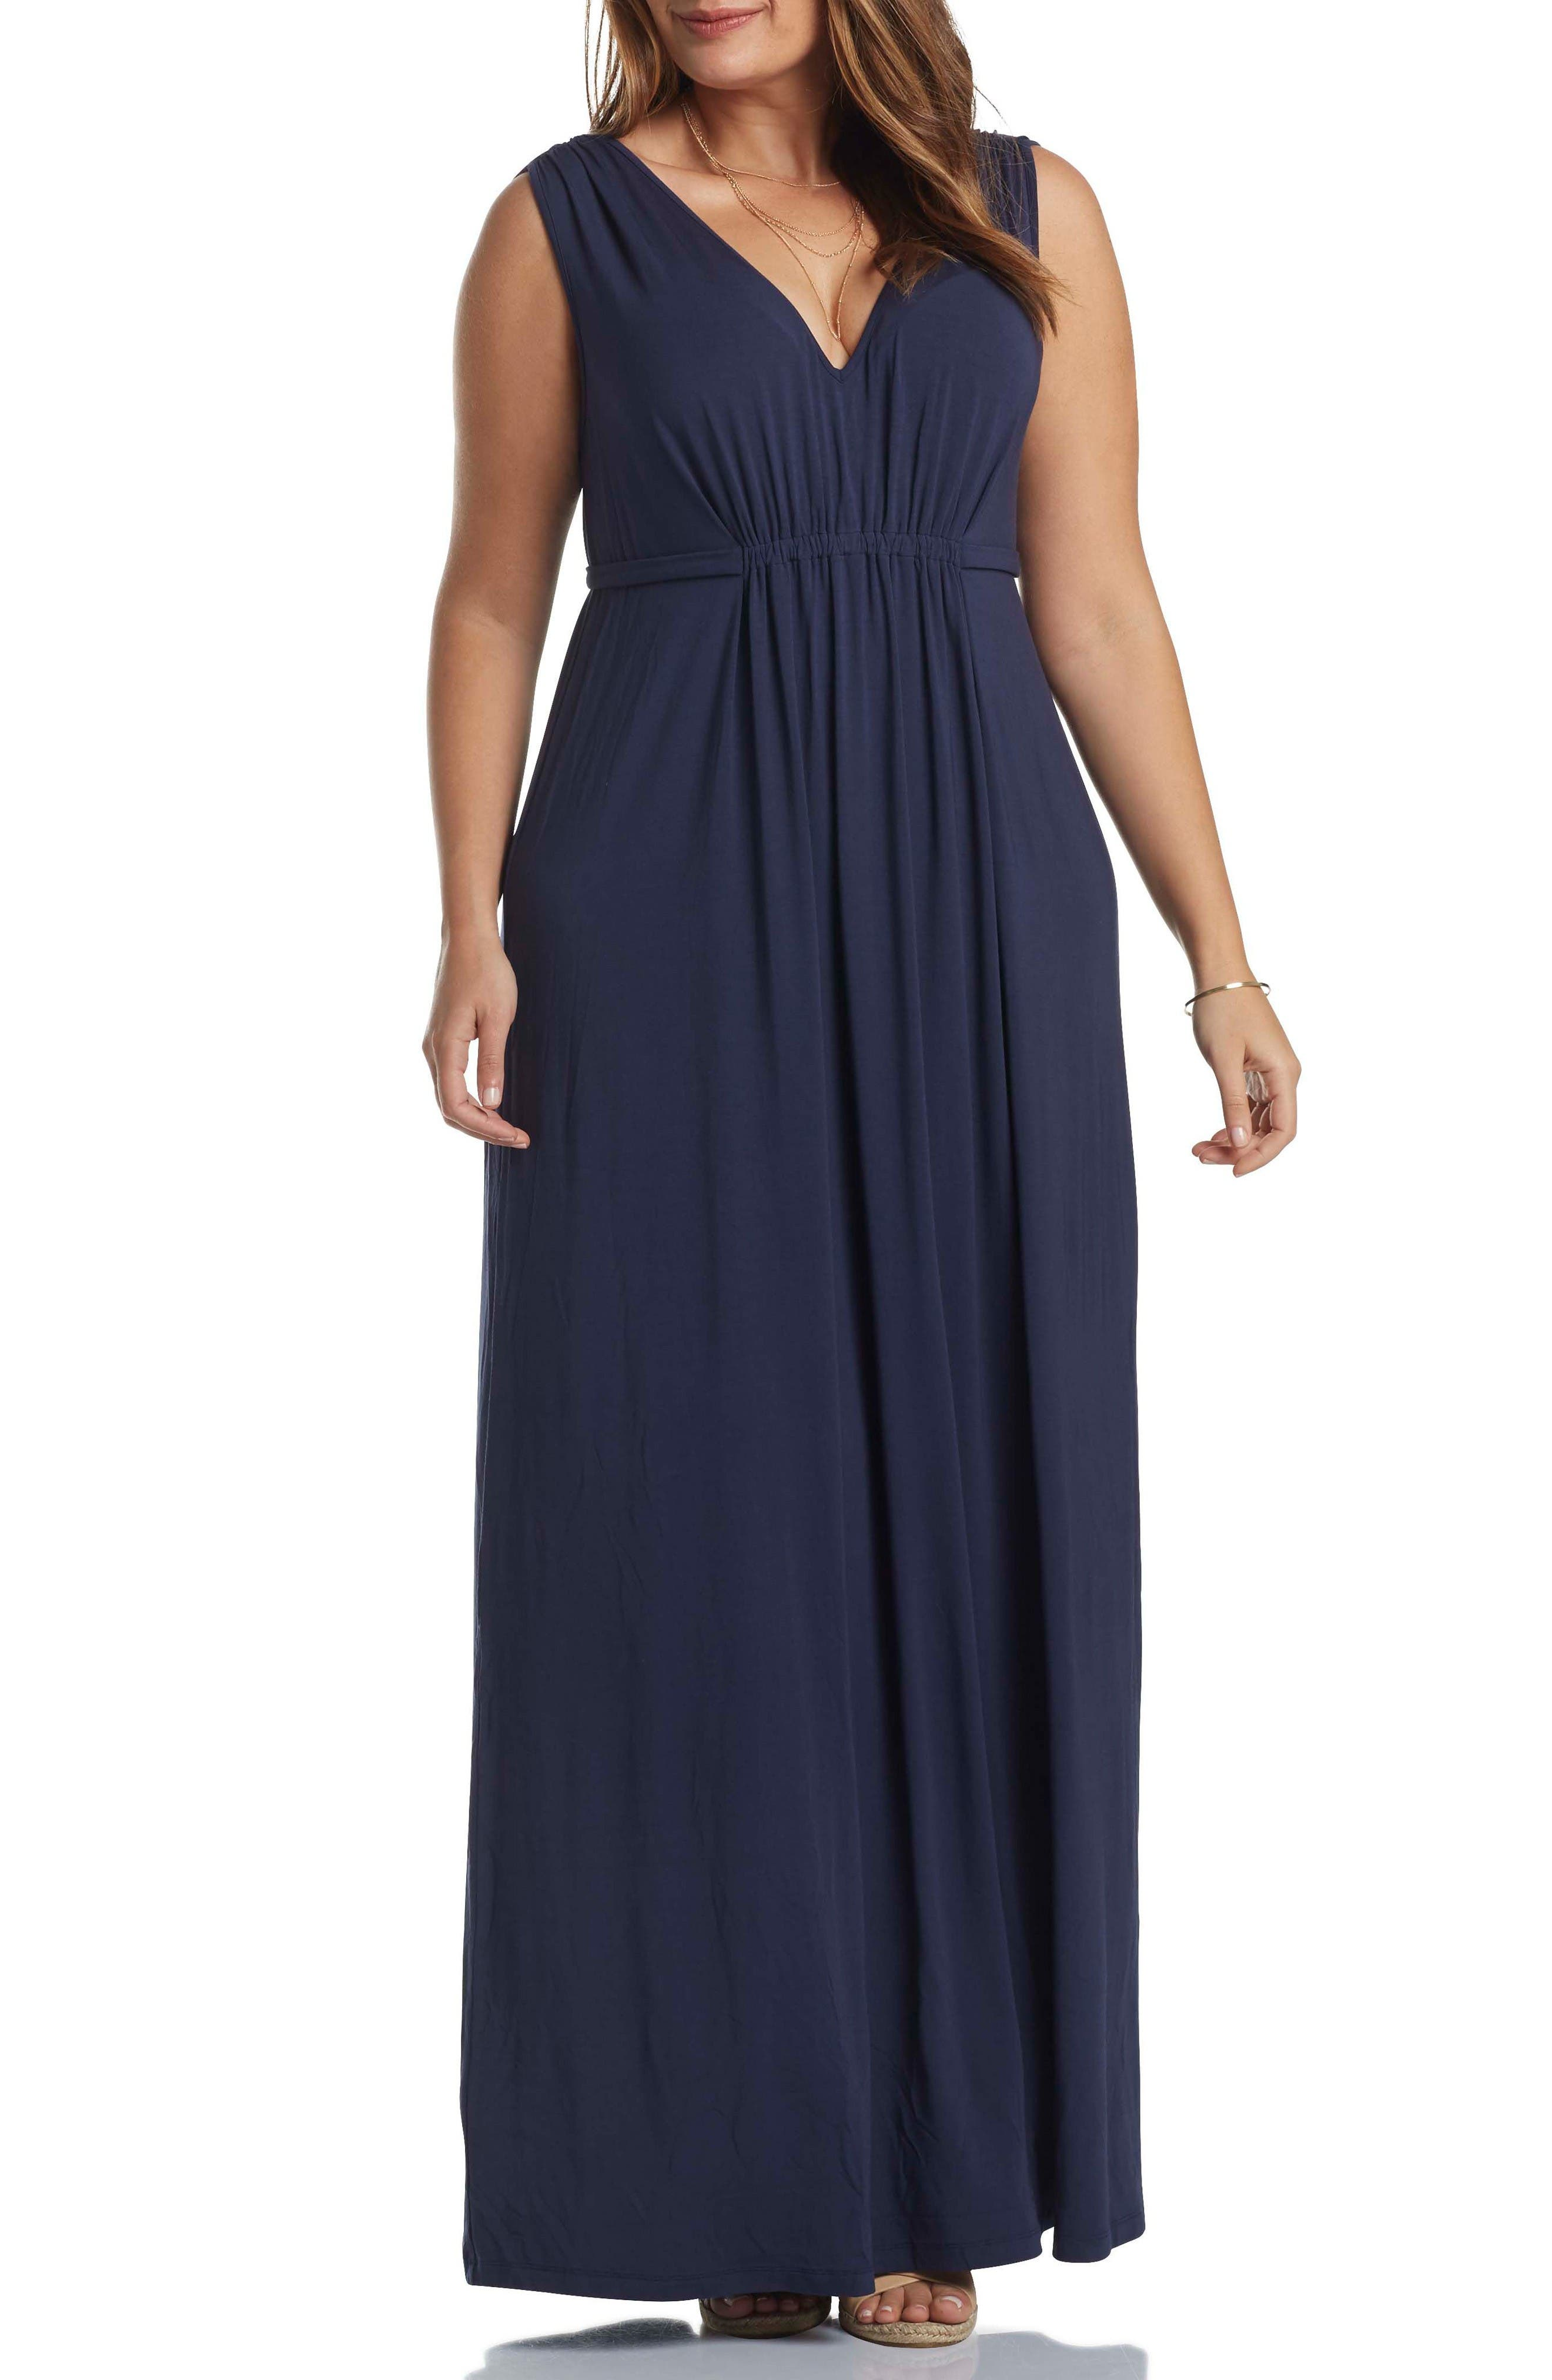 Grecia Sleeveless Jersey Maxi Dress,                         Main,                         color, Black Iris